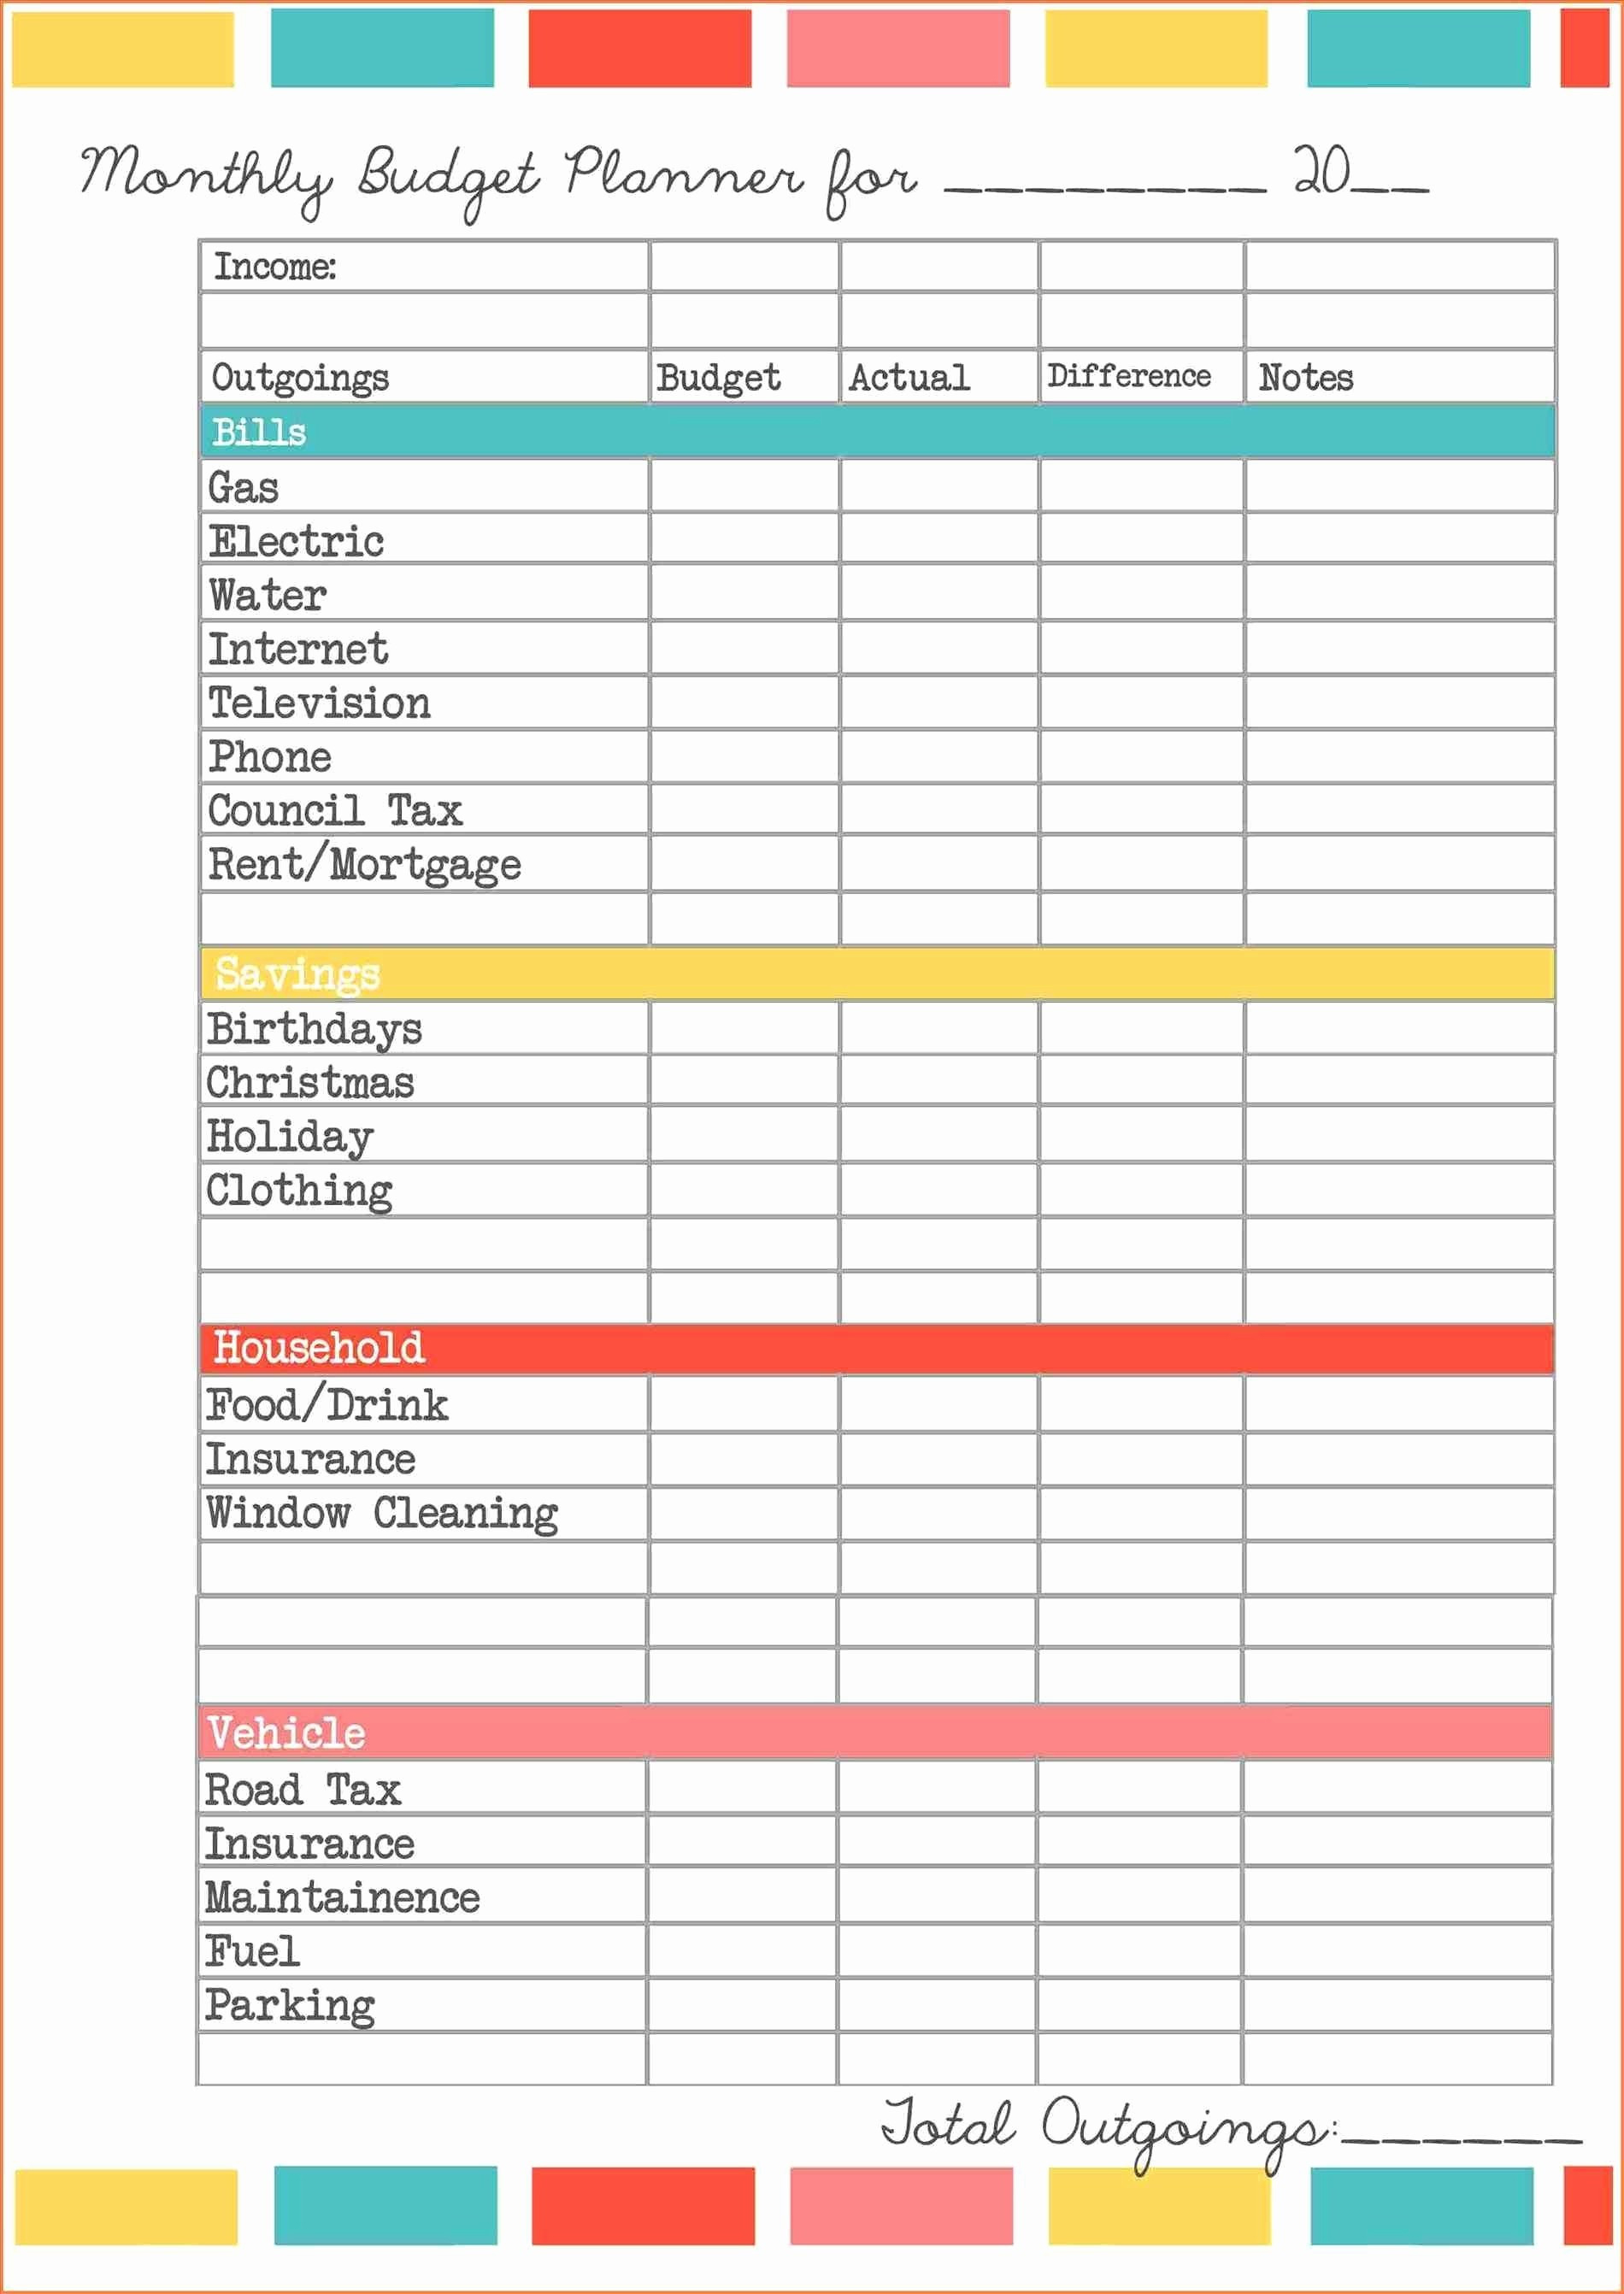 Tax Spreadsheet Template For Business With Regard To Accountingeadsheet Templates For Small Business Free Downloads Excel